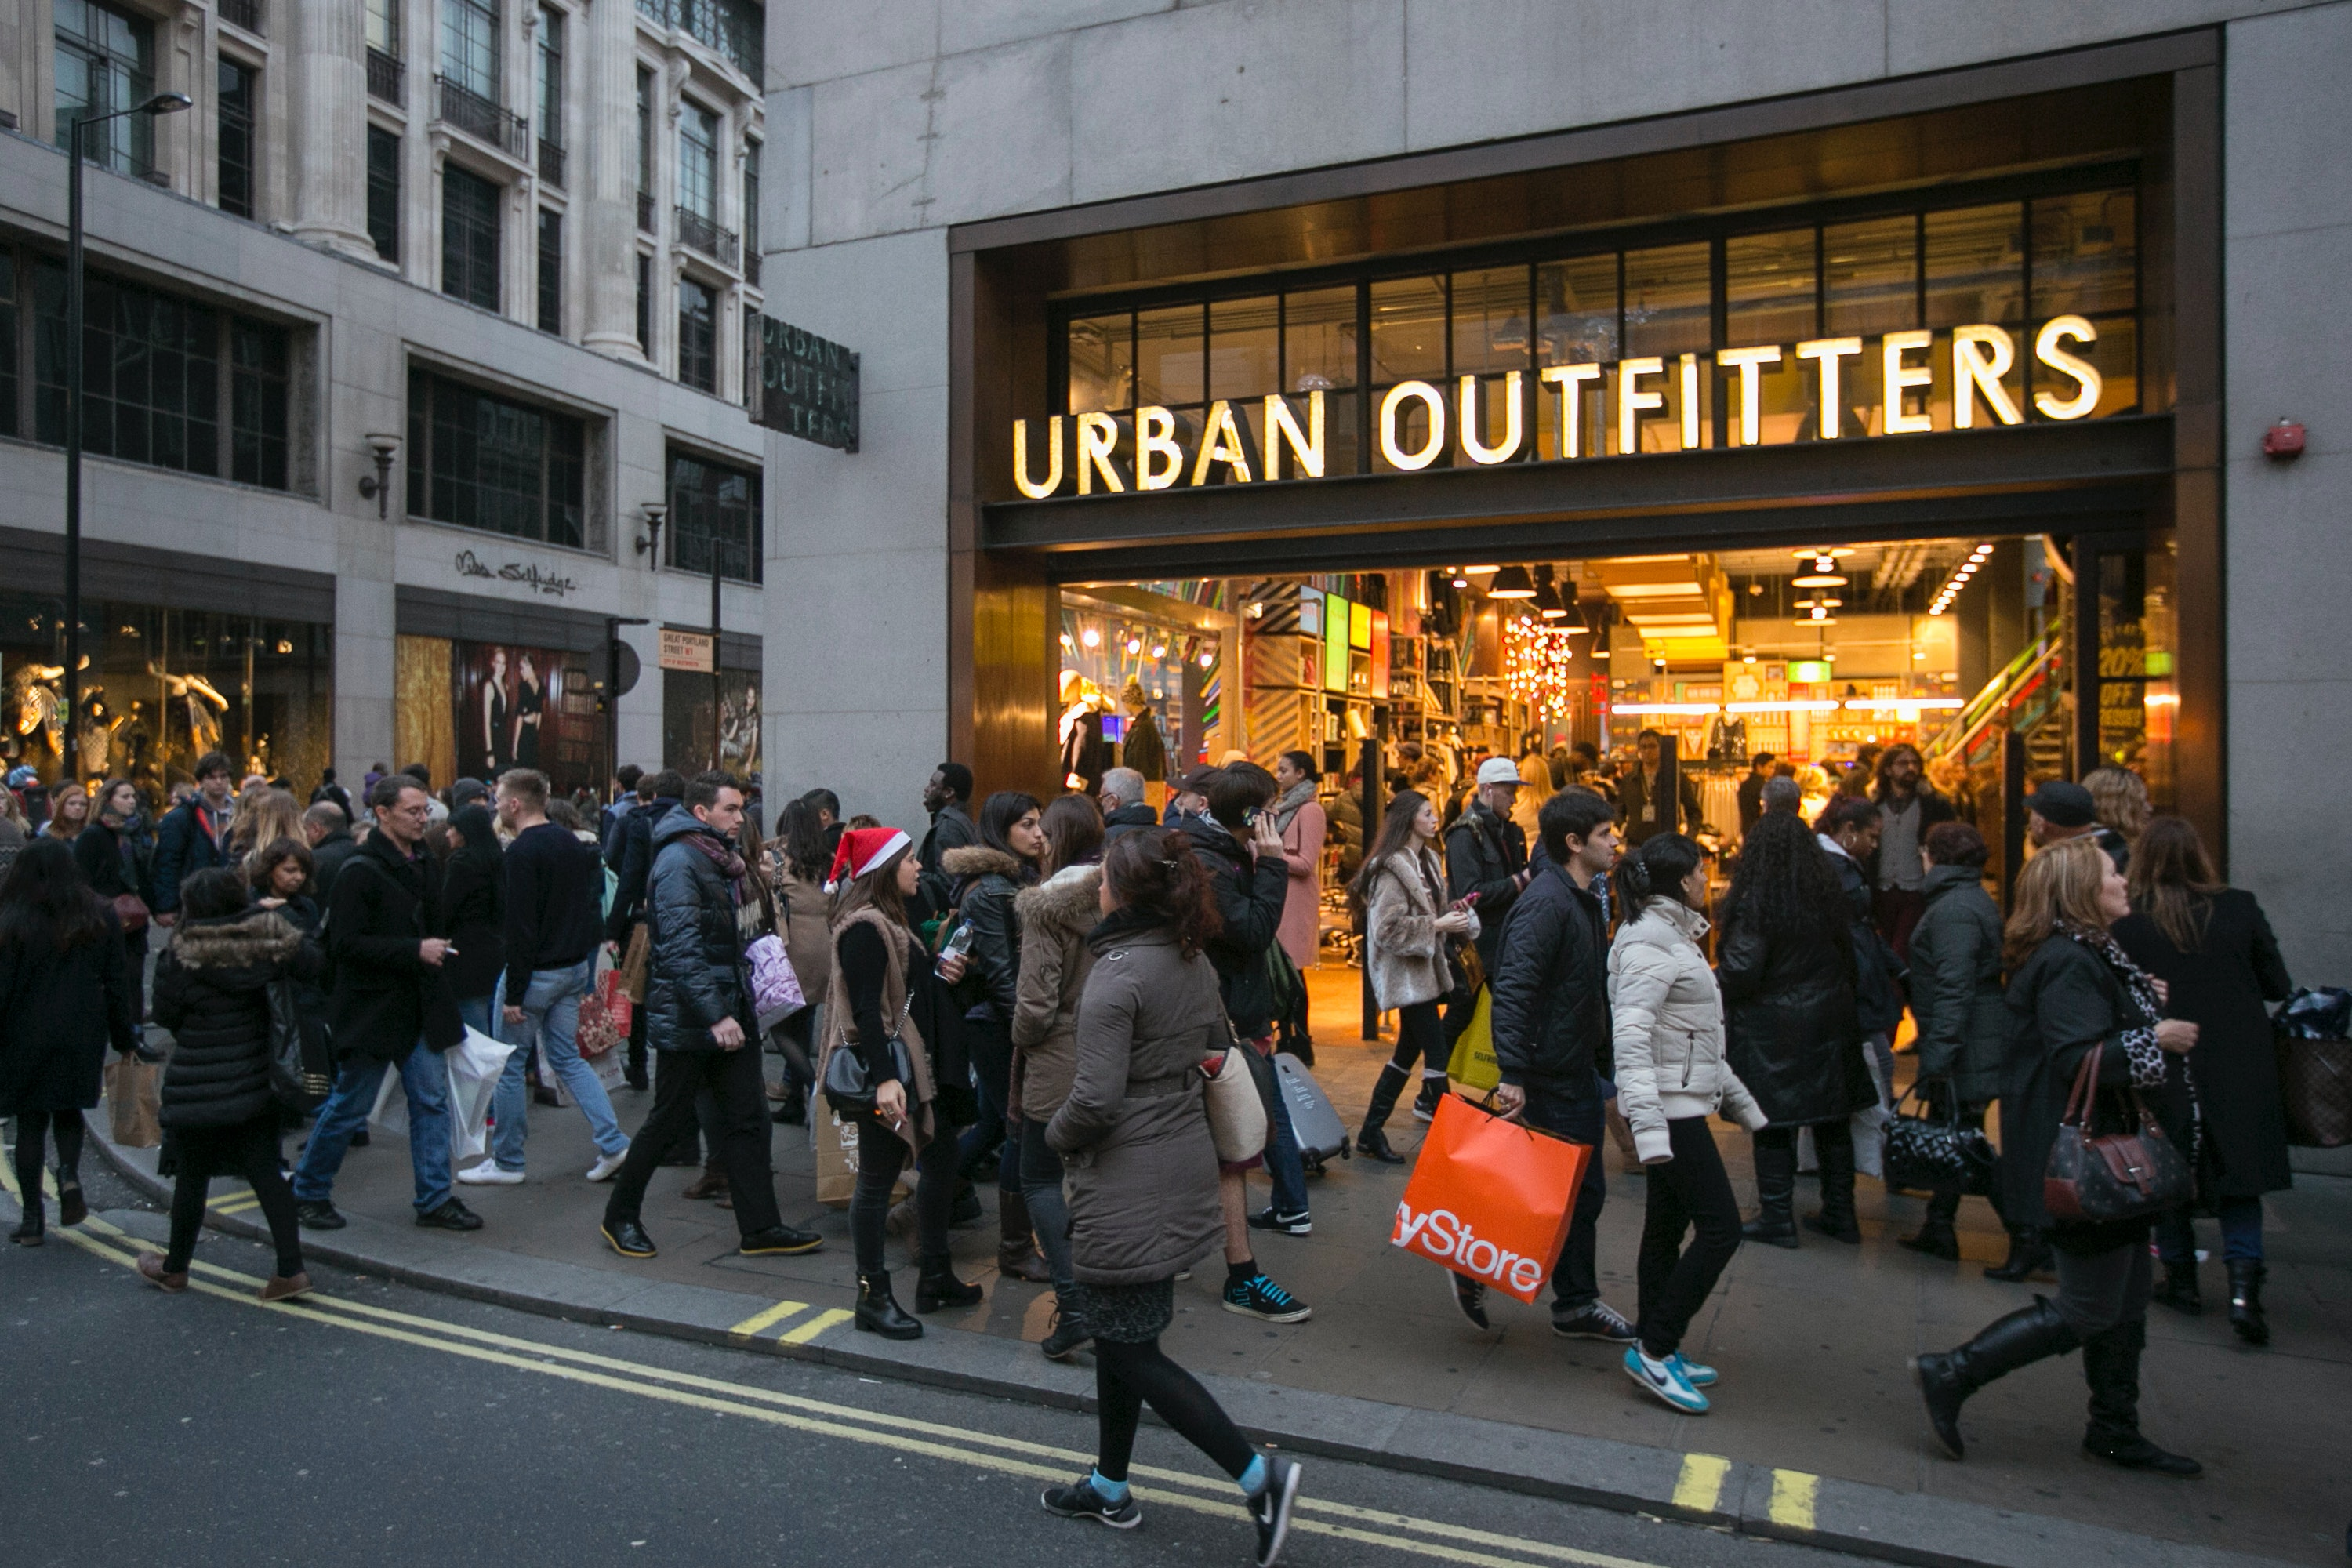 Urban Outfitters shares jump 10% on record sales for retailer